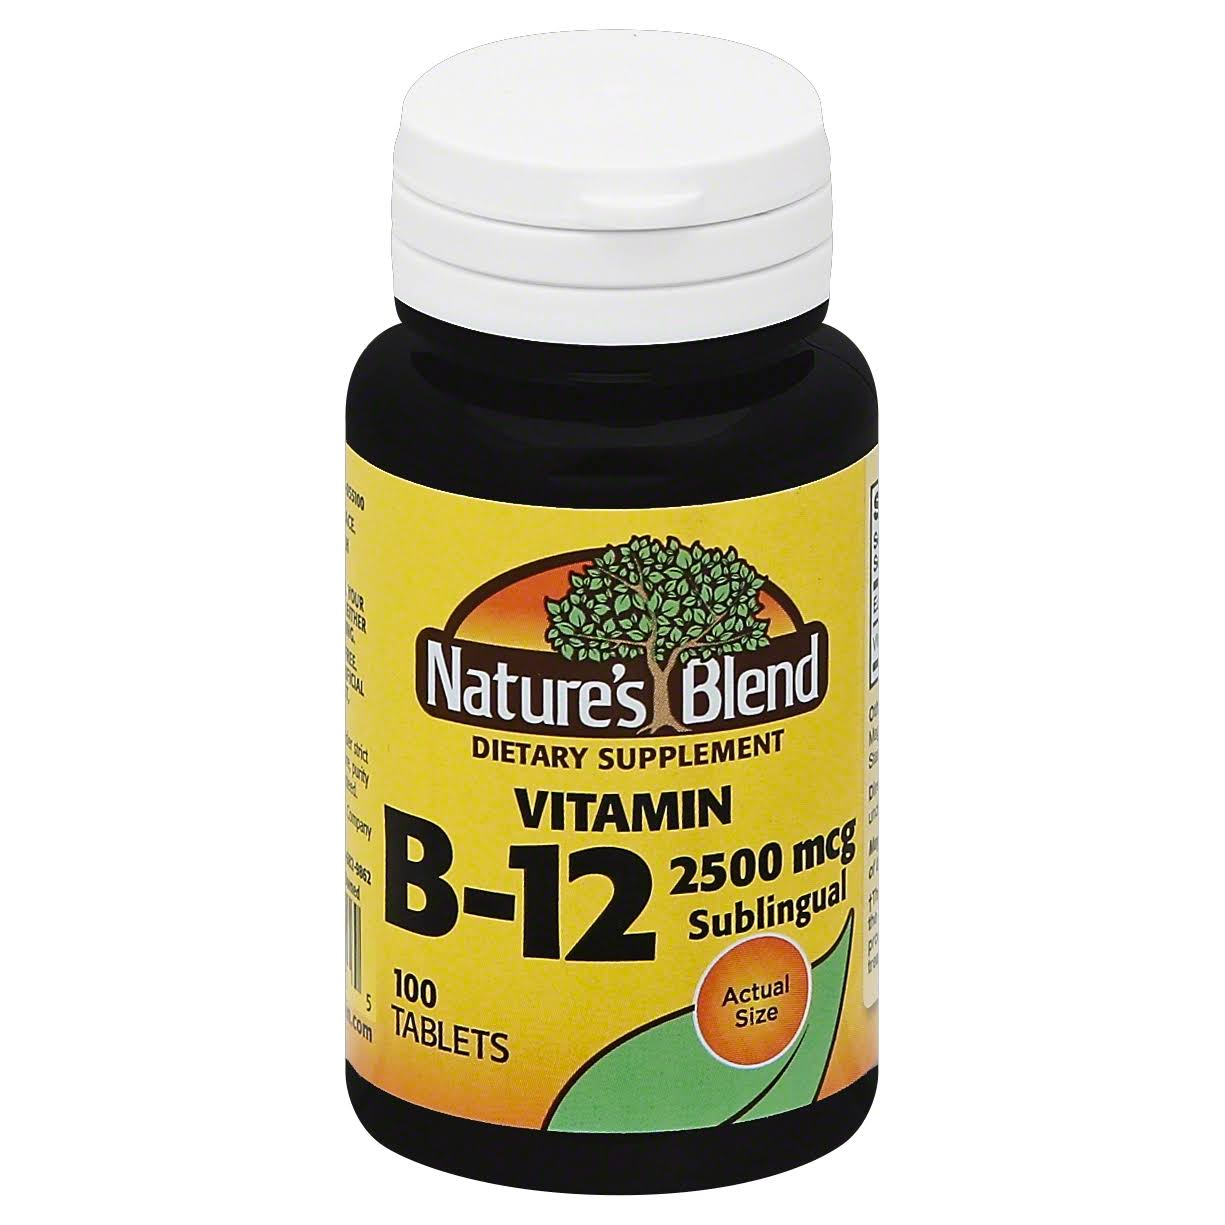 Nature's Blend Vitamin B-12 2500mcg Tablets